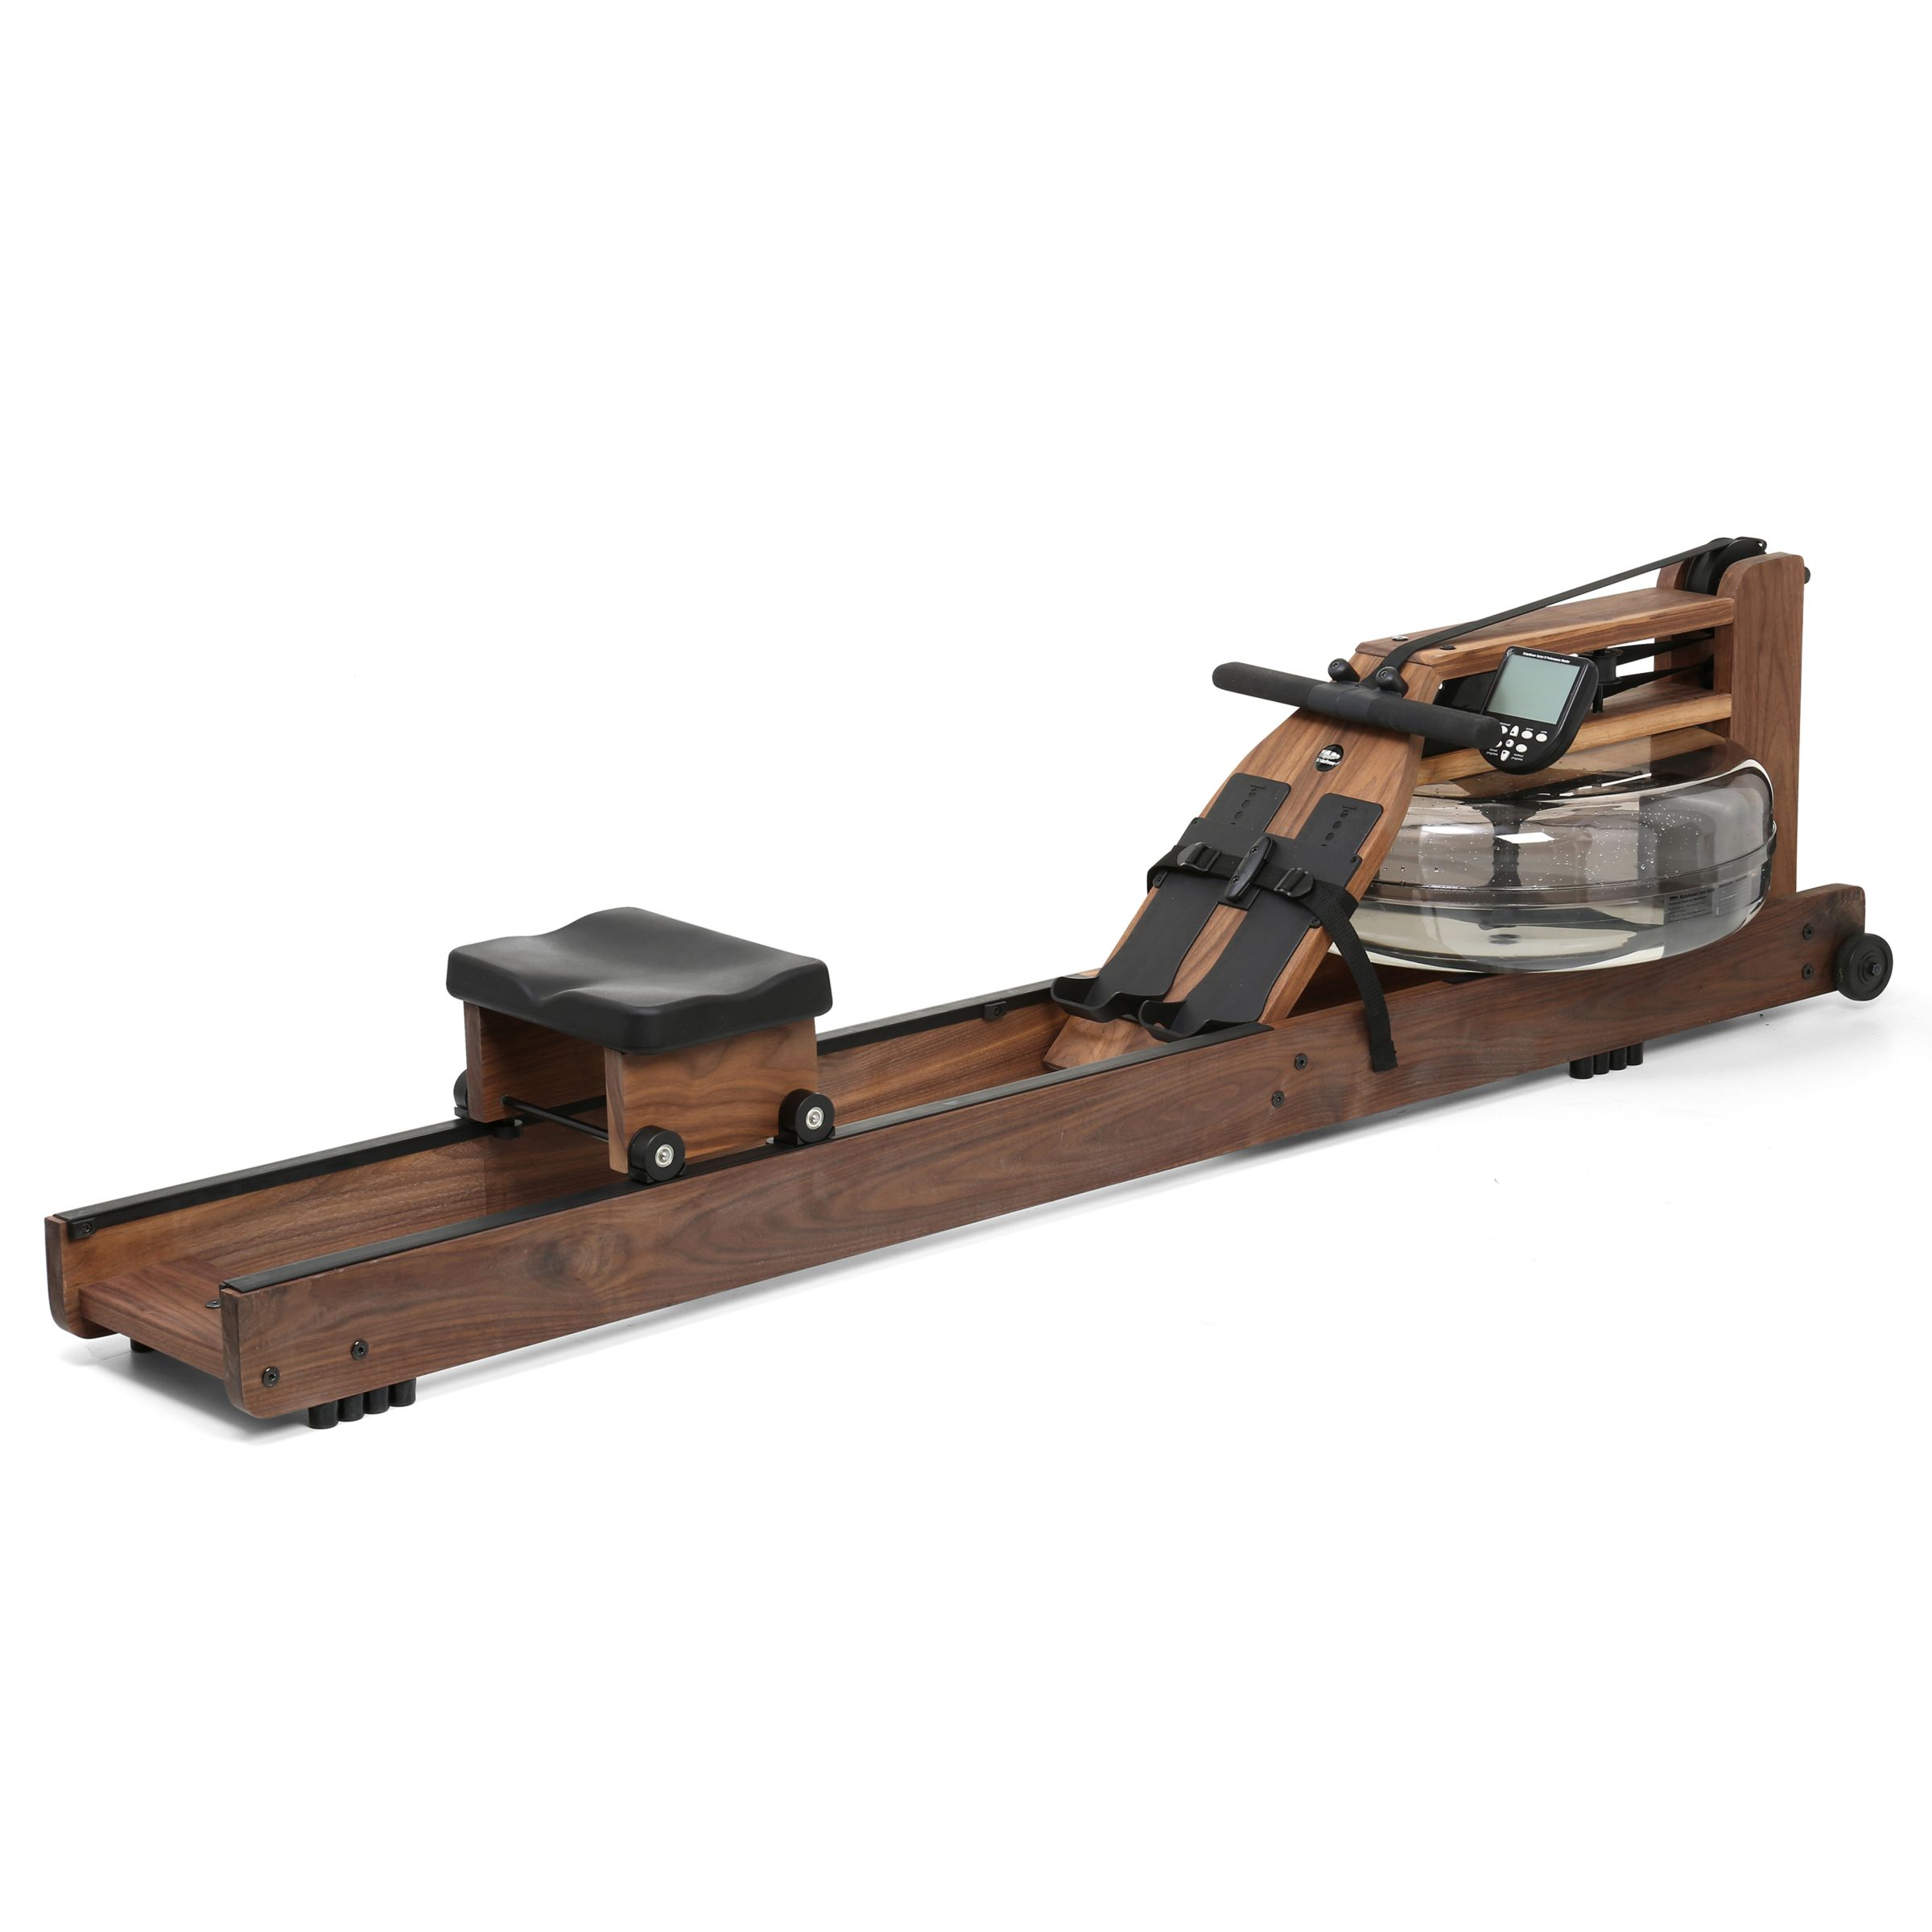 Waterrower Classic Rowing Machine With S4 Performance Monitor American Black Walnut